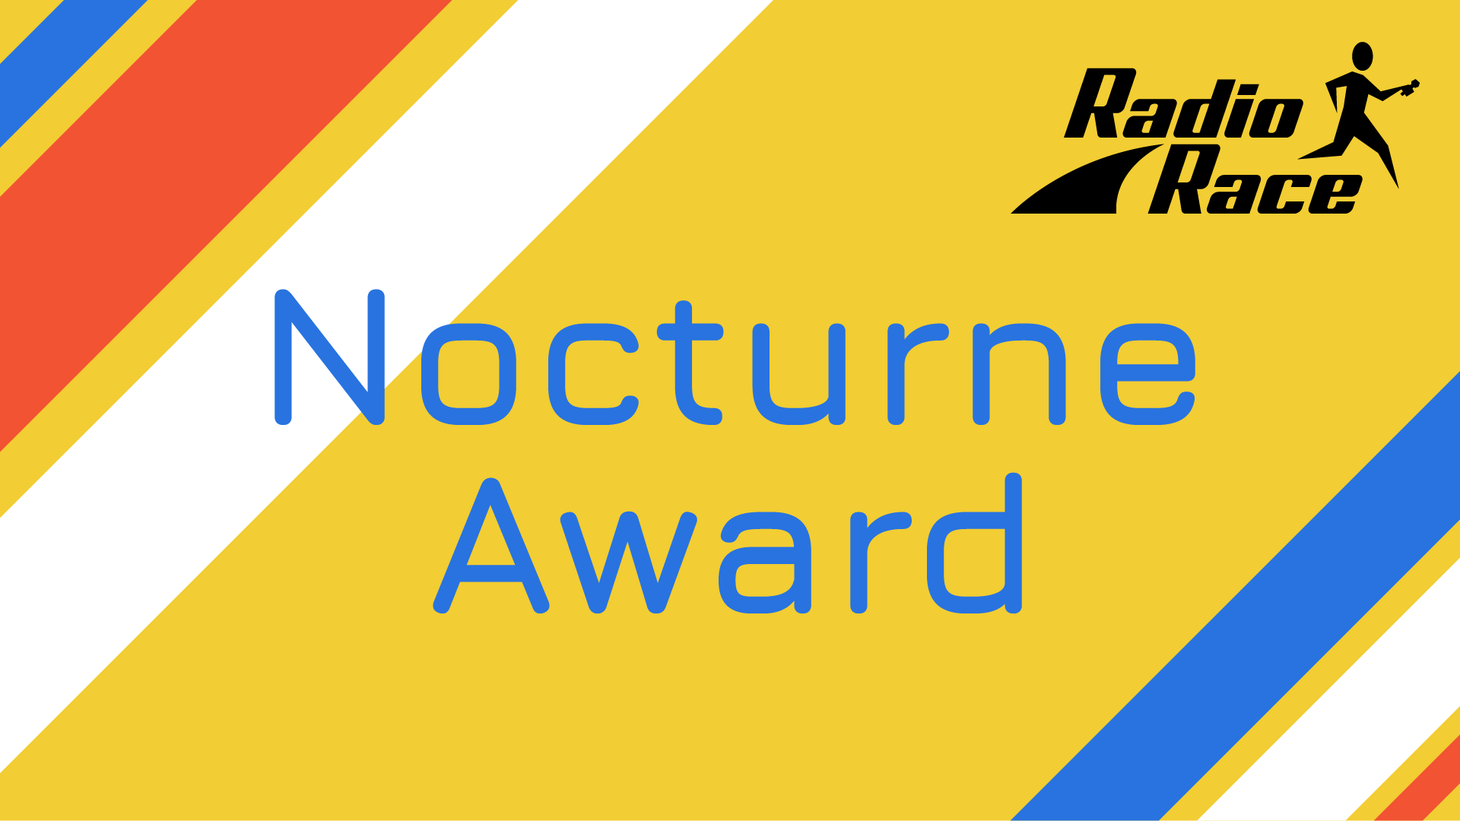 """The theme of this year's KCRW 24-Hour Radio Race was """"Where the Sun Don't Shine"""". One entry received the Nocturne Award."""